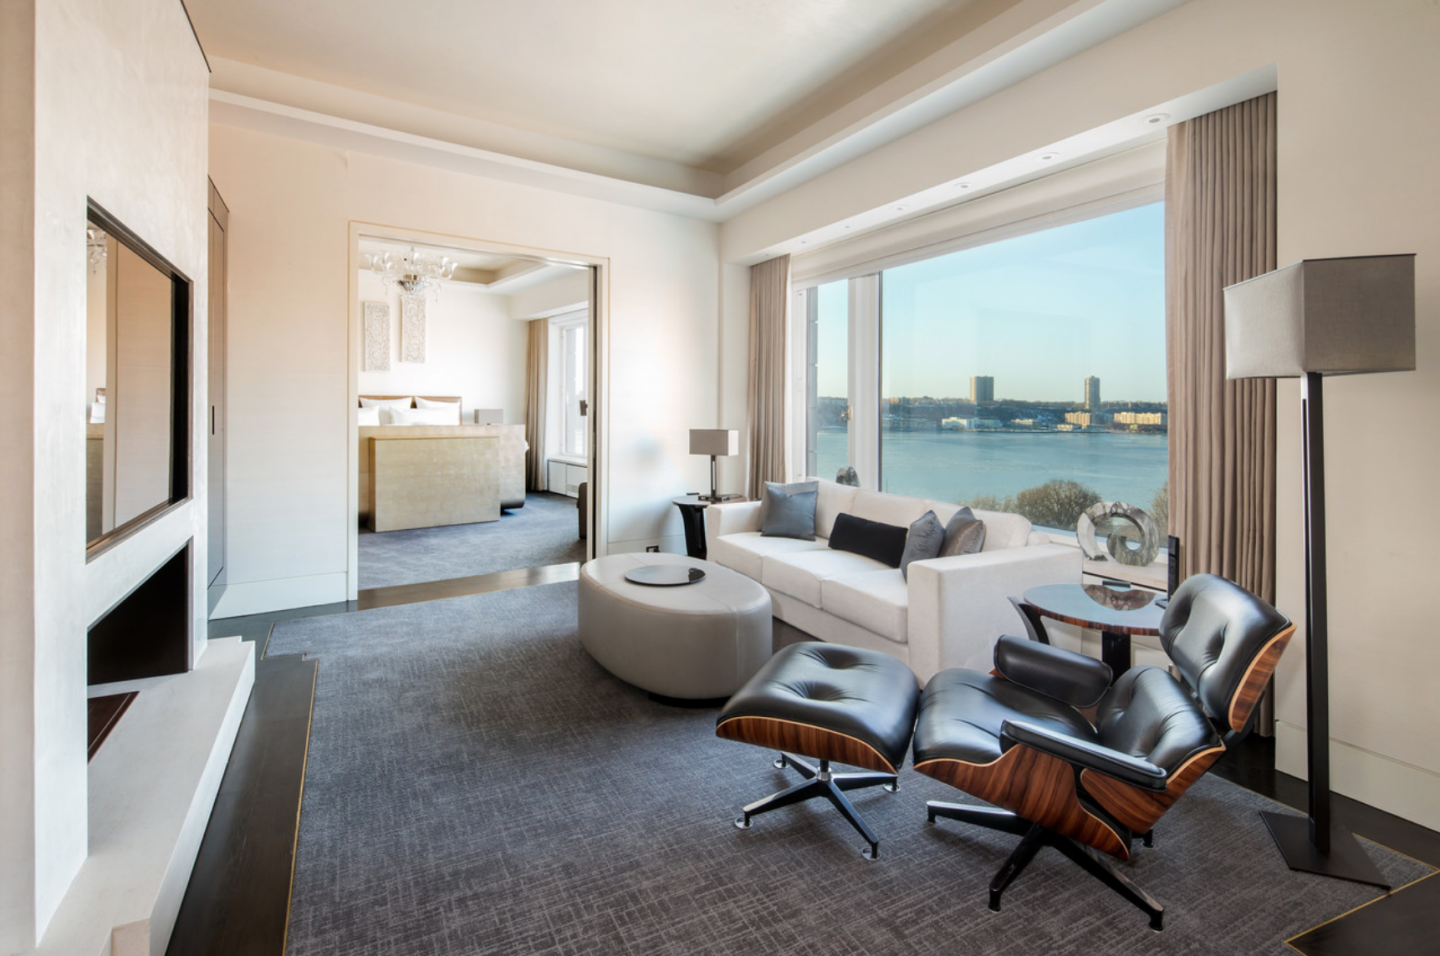 Modern interiors include picturesque panoramic windows, Hudson River views and modern fireplaces.